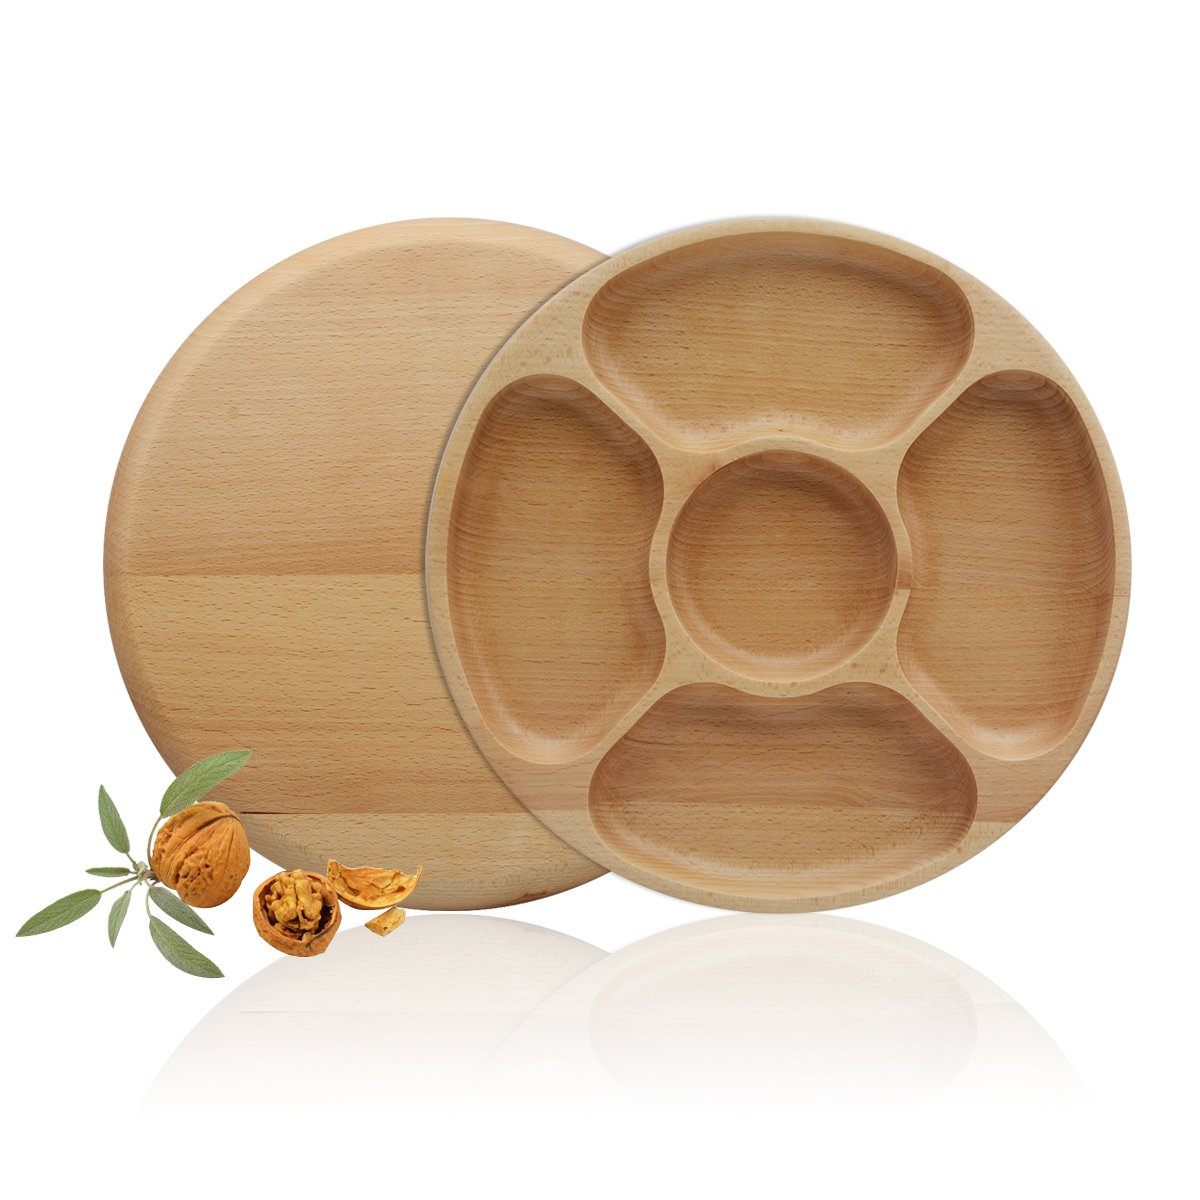 Saim Bamboo Snacks Plates Round Serving Trays Food Container Cookies Candy Nuts Fruit Specialty Plates with 5 Sections 0180116